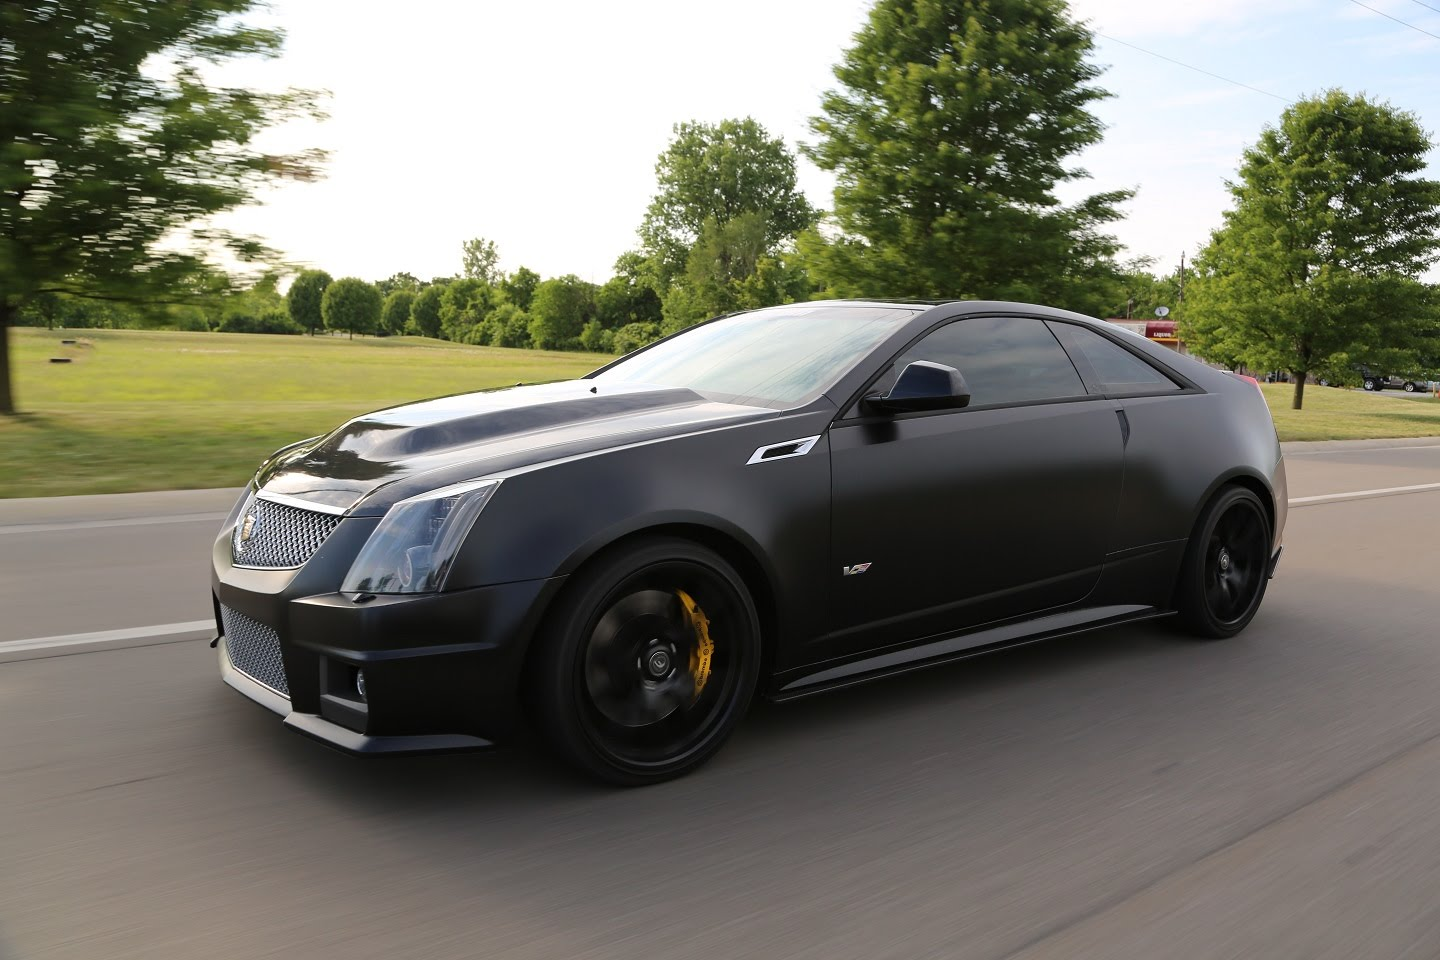 2014 Corvette Vs Cadillac Cts V Autos Post